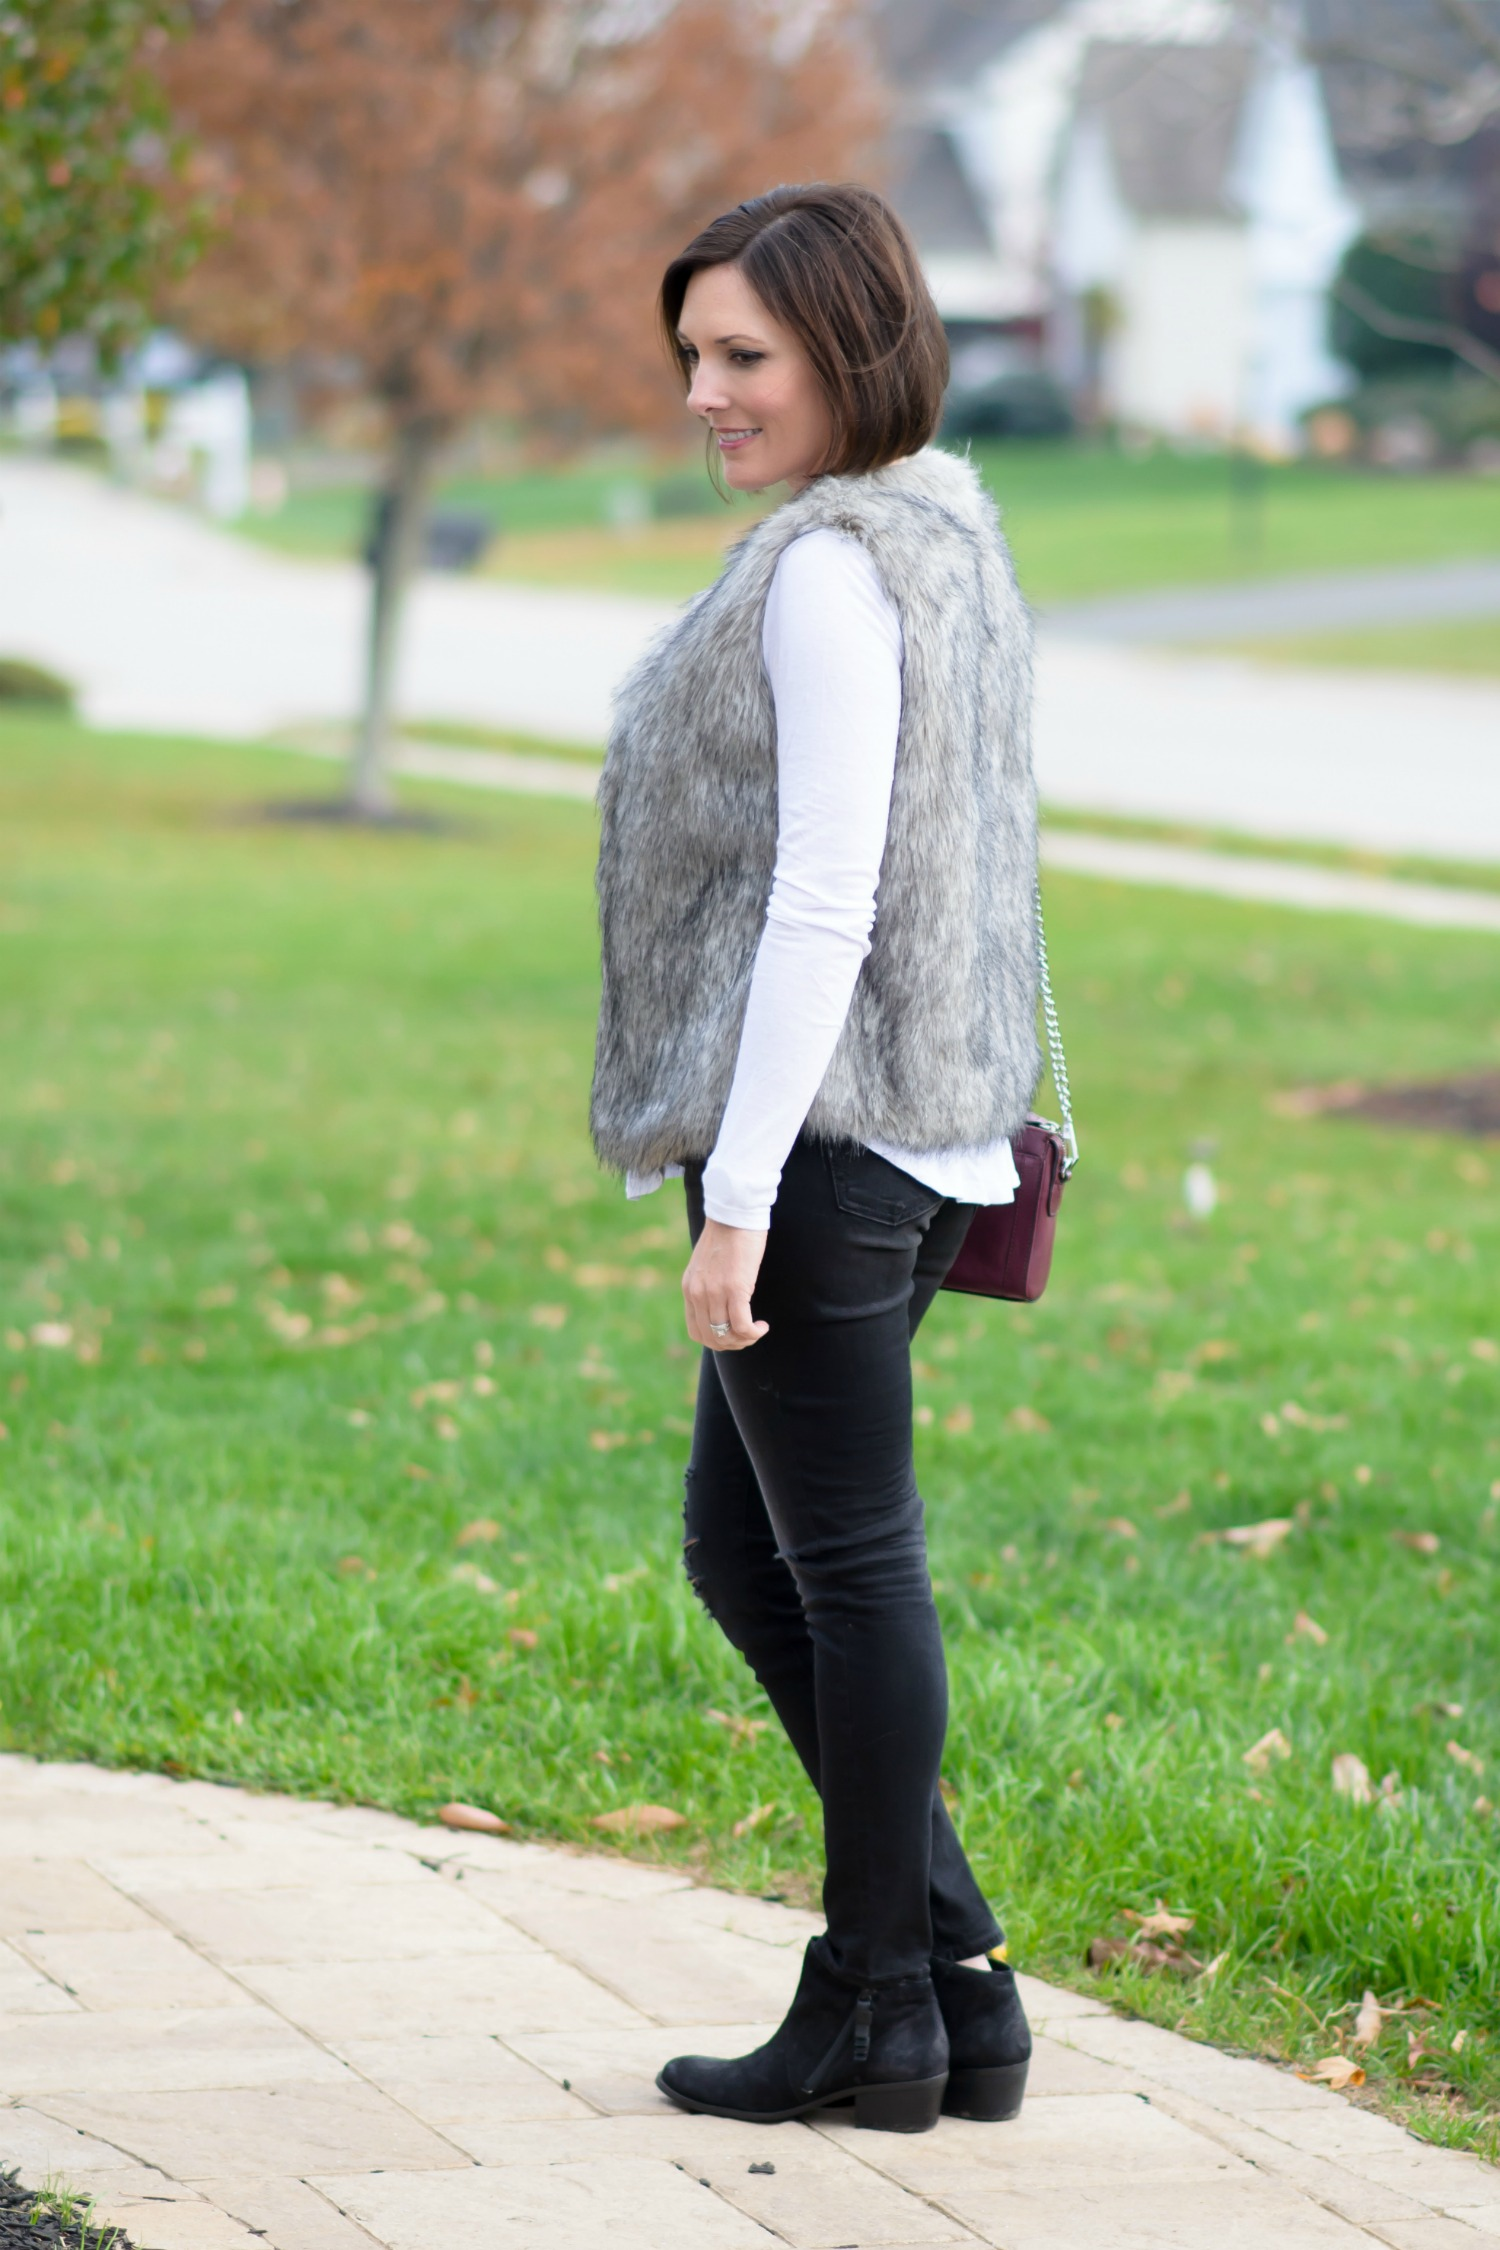 Winter Outfit Ideas: Fur Vest with Distressed Jeans and Long Sleeve Tee